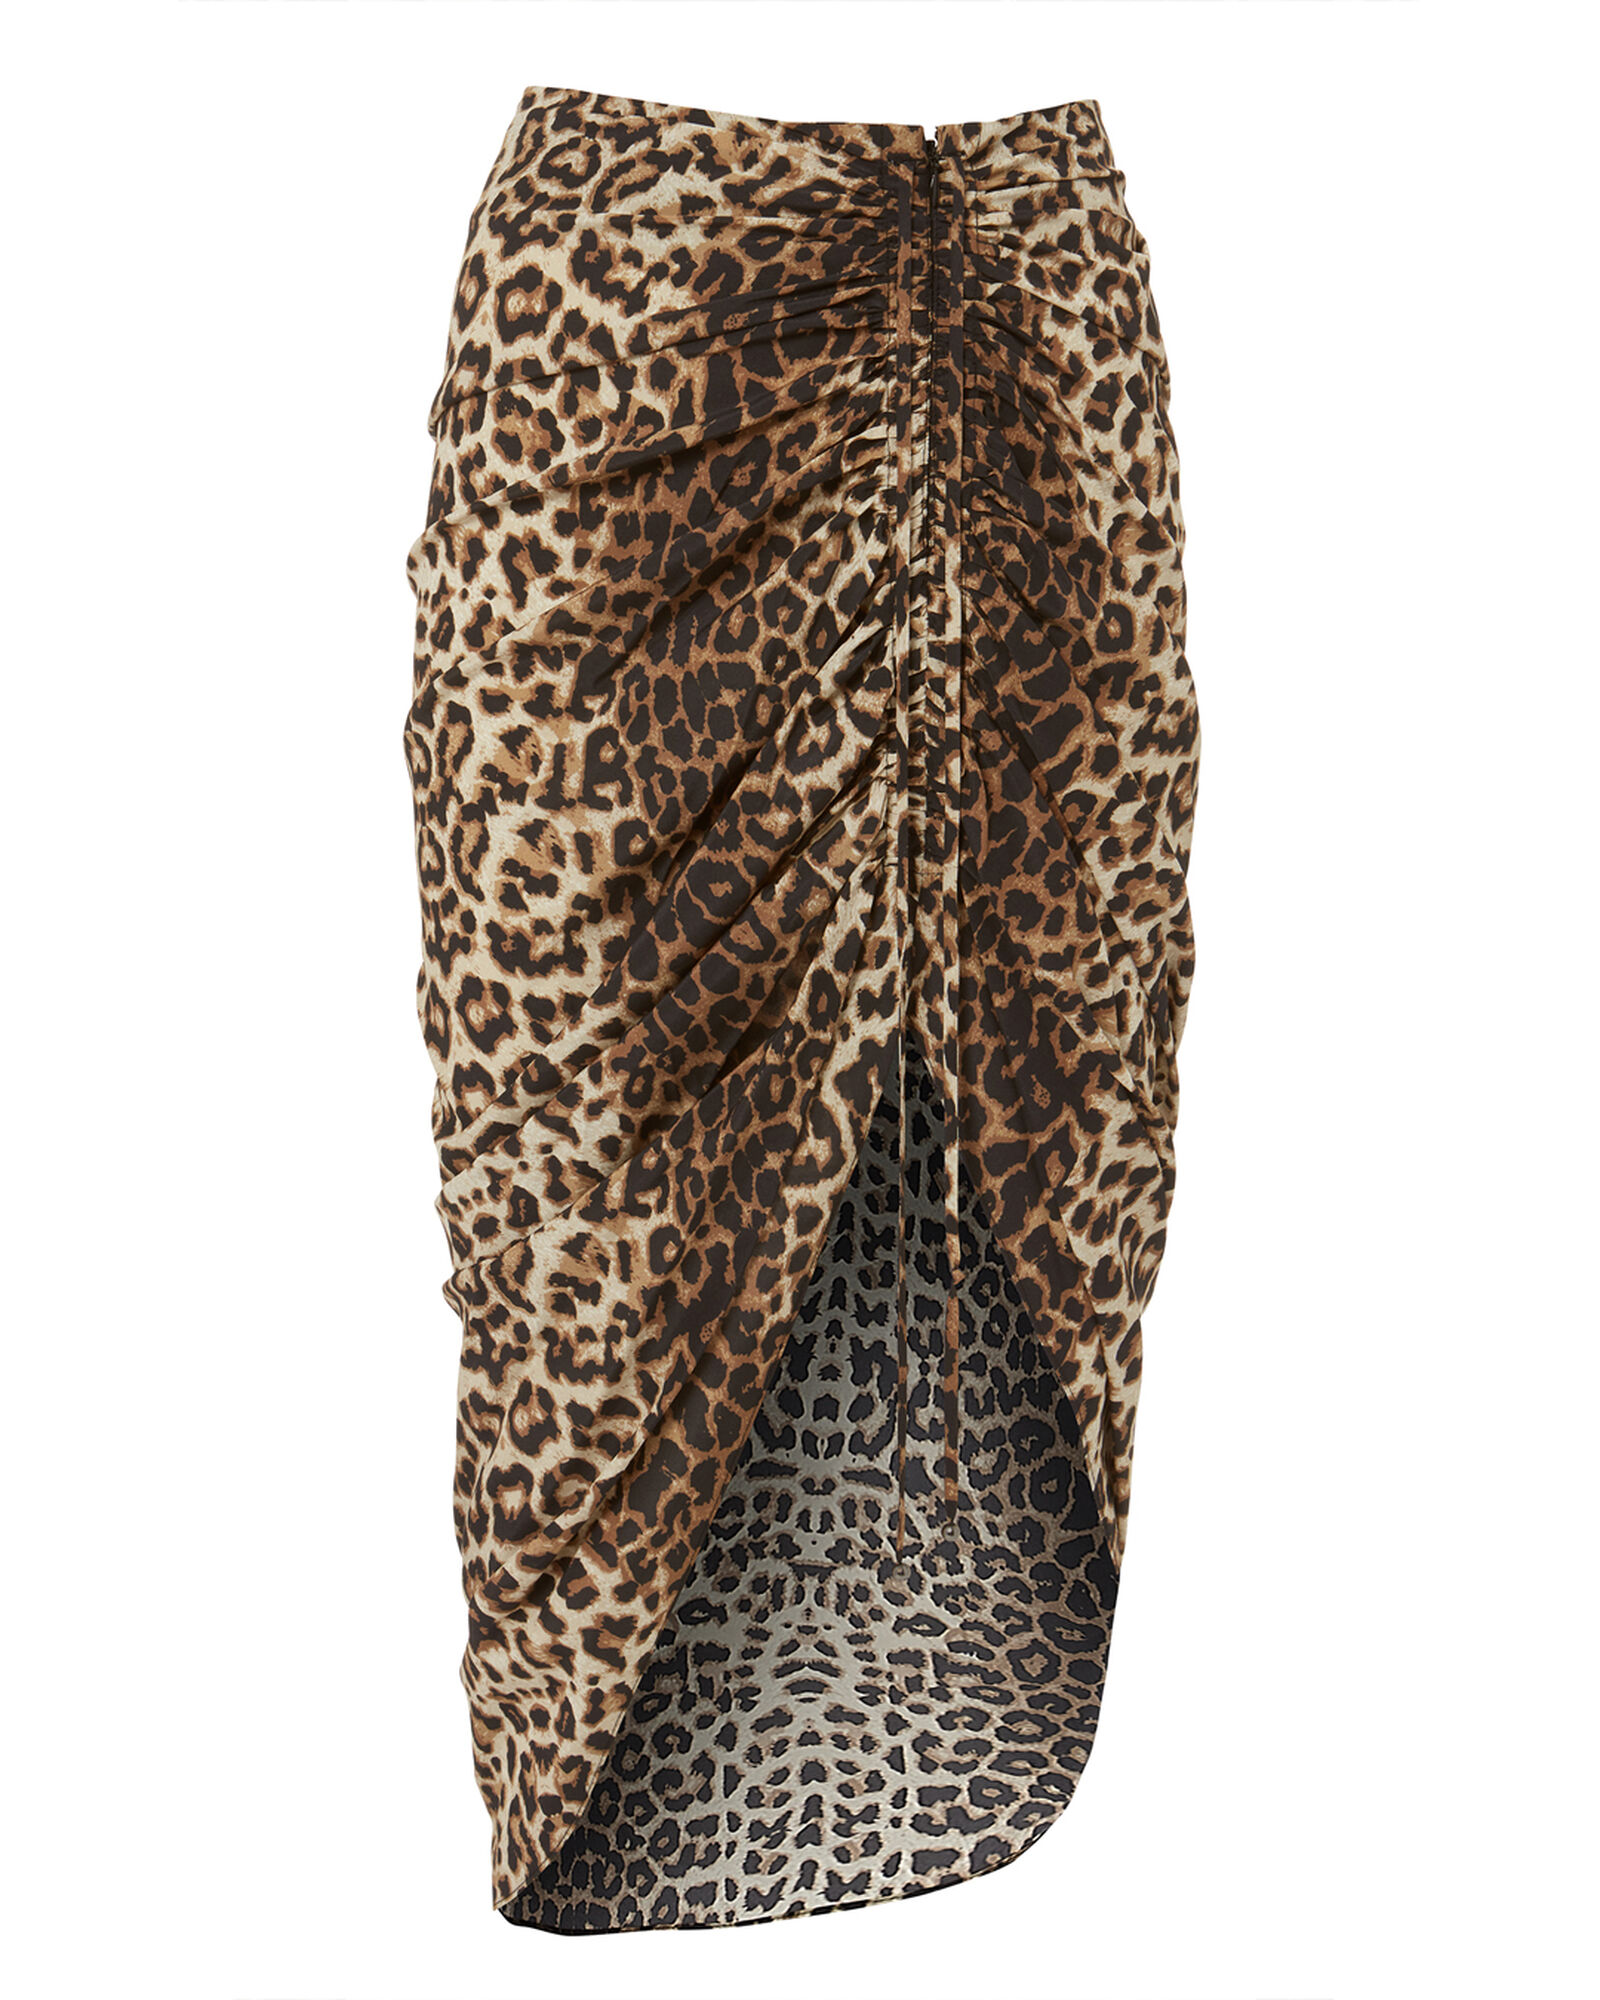 Ari Asymmetrical Leopard Skirt, BROWN, hi-res